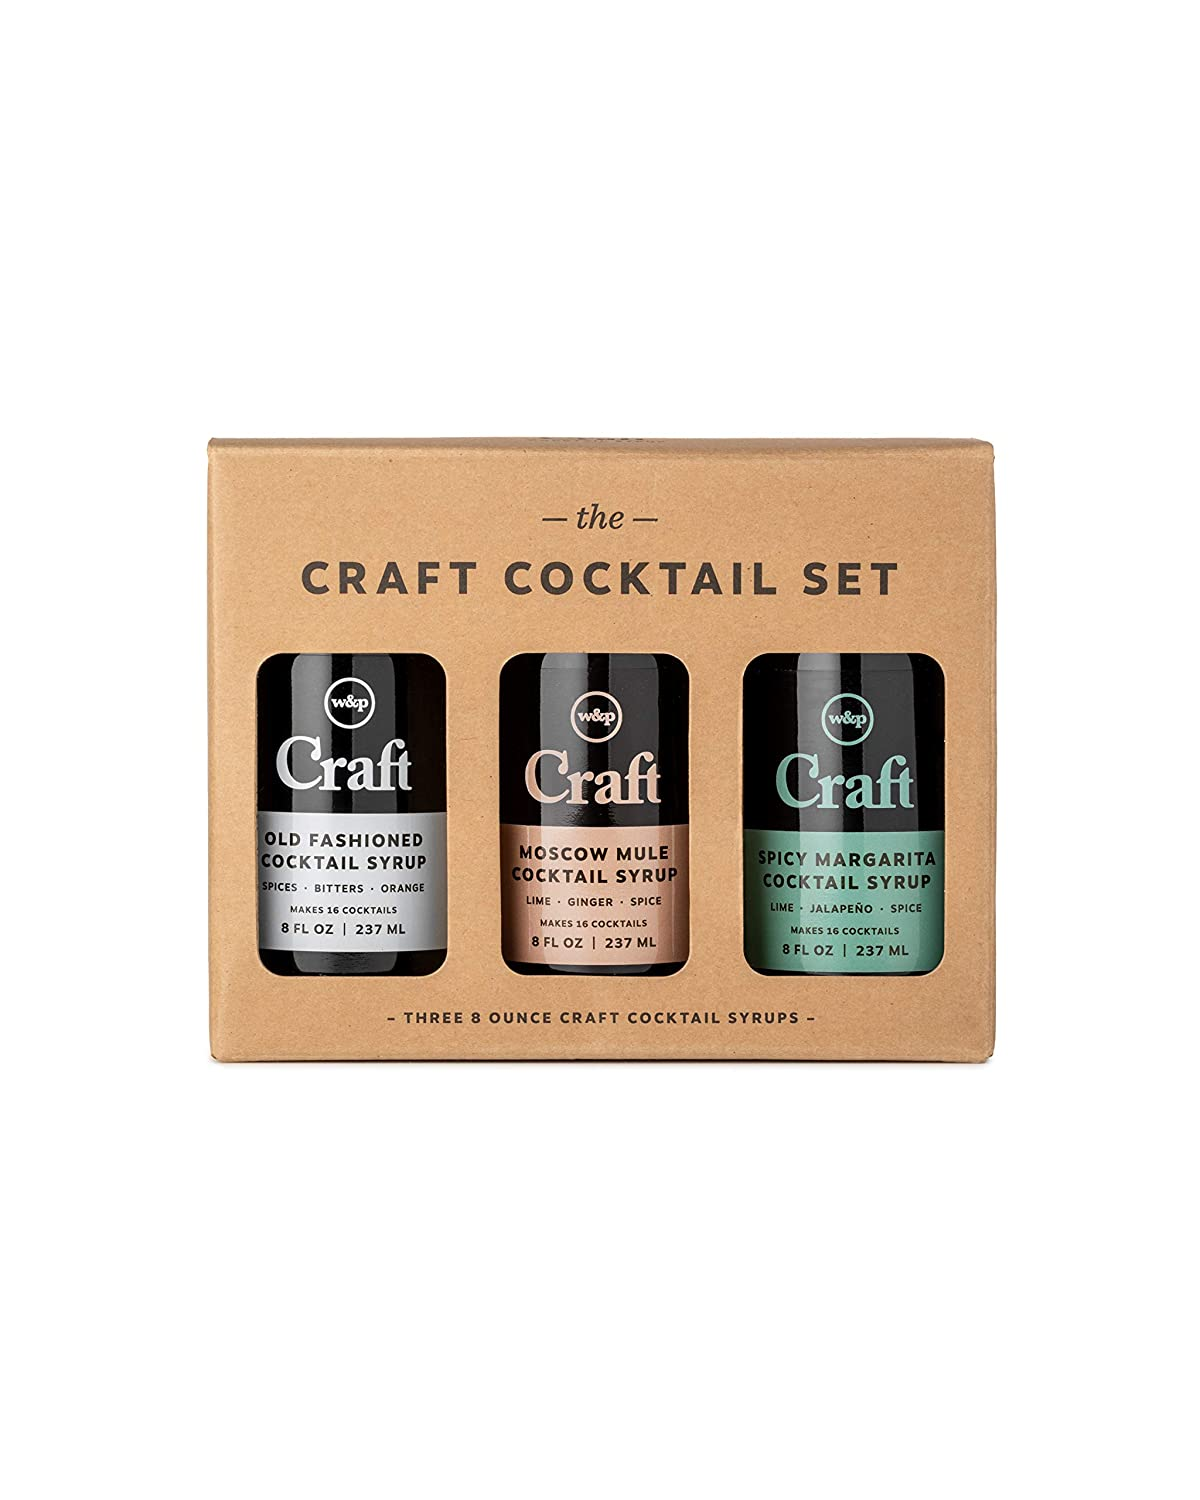 W&P Craft Cocktail Syrup Set, Old Fashioned, Moscow Mule, Spicy Margarita | Variety Pack, 8 Ounce Each, 3 Bottles | Cocktail Mixer, Handcrafted in Small Batches, Craft Cocktail, Bar Collection